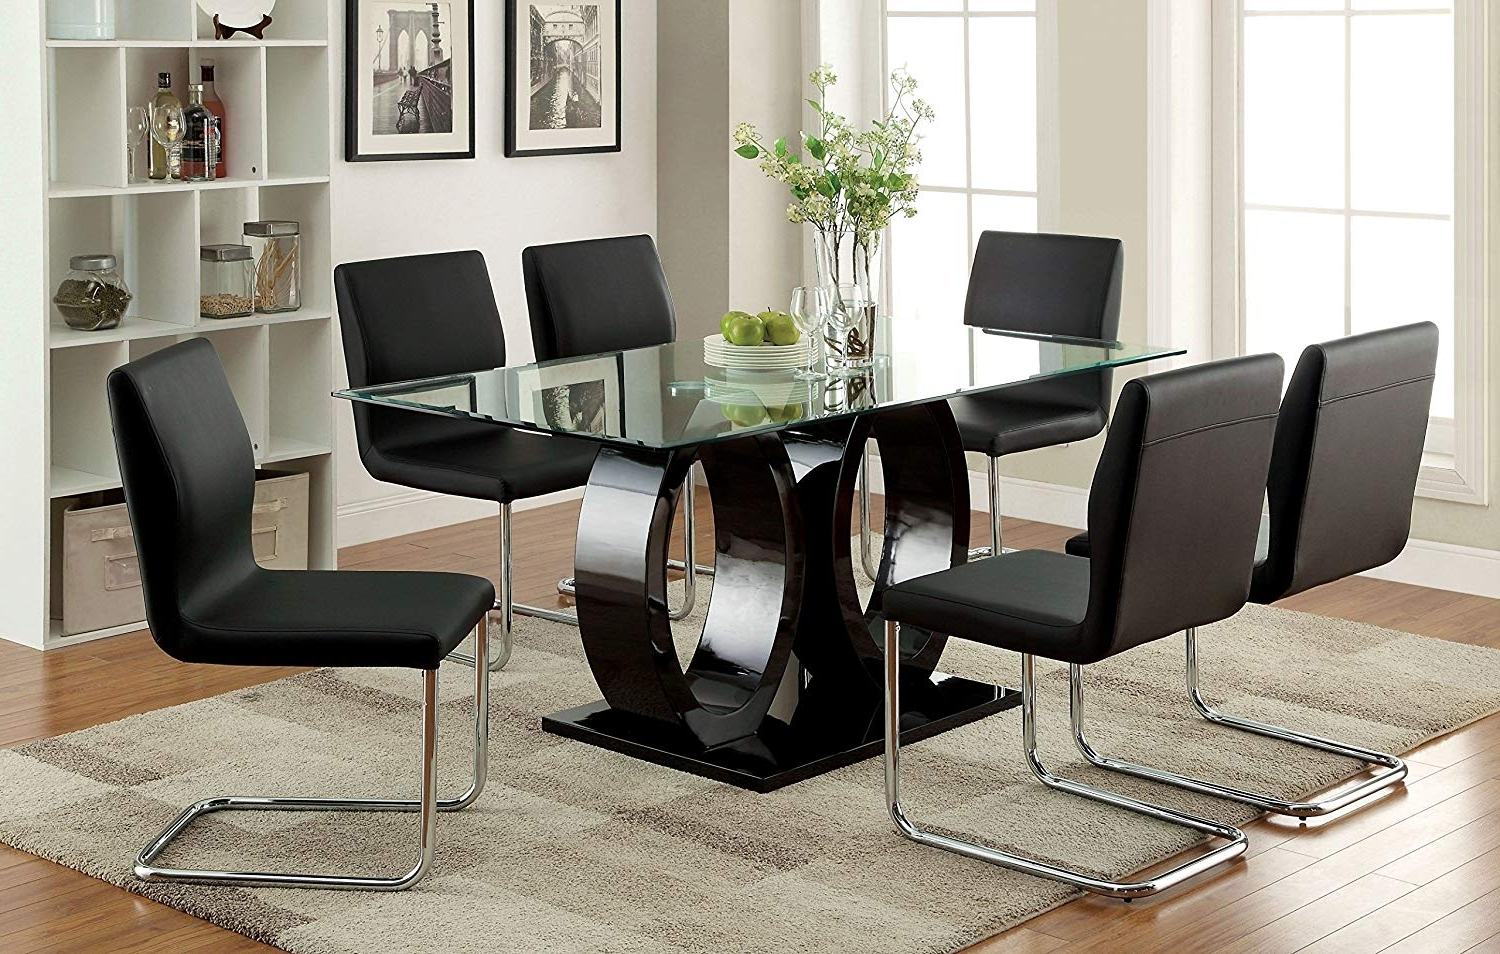 Widely Used Amazon – Furniture Of America Quezon 7 Piece Glass Top Double Intended For Contemporary Dining Room Tables And Chairs (View 14 of 25)